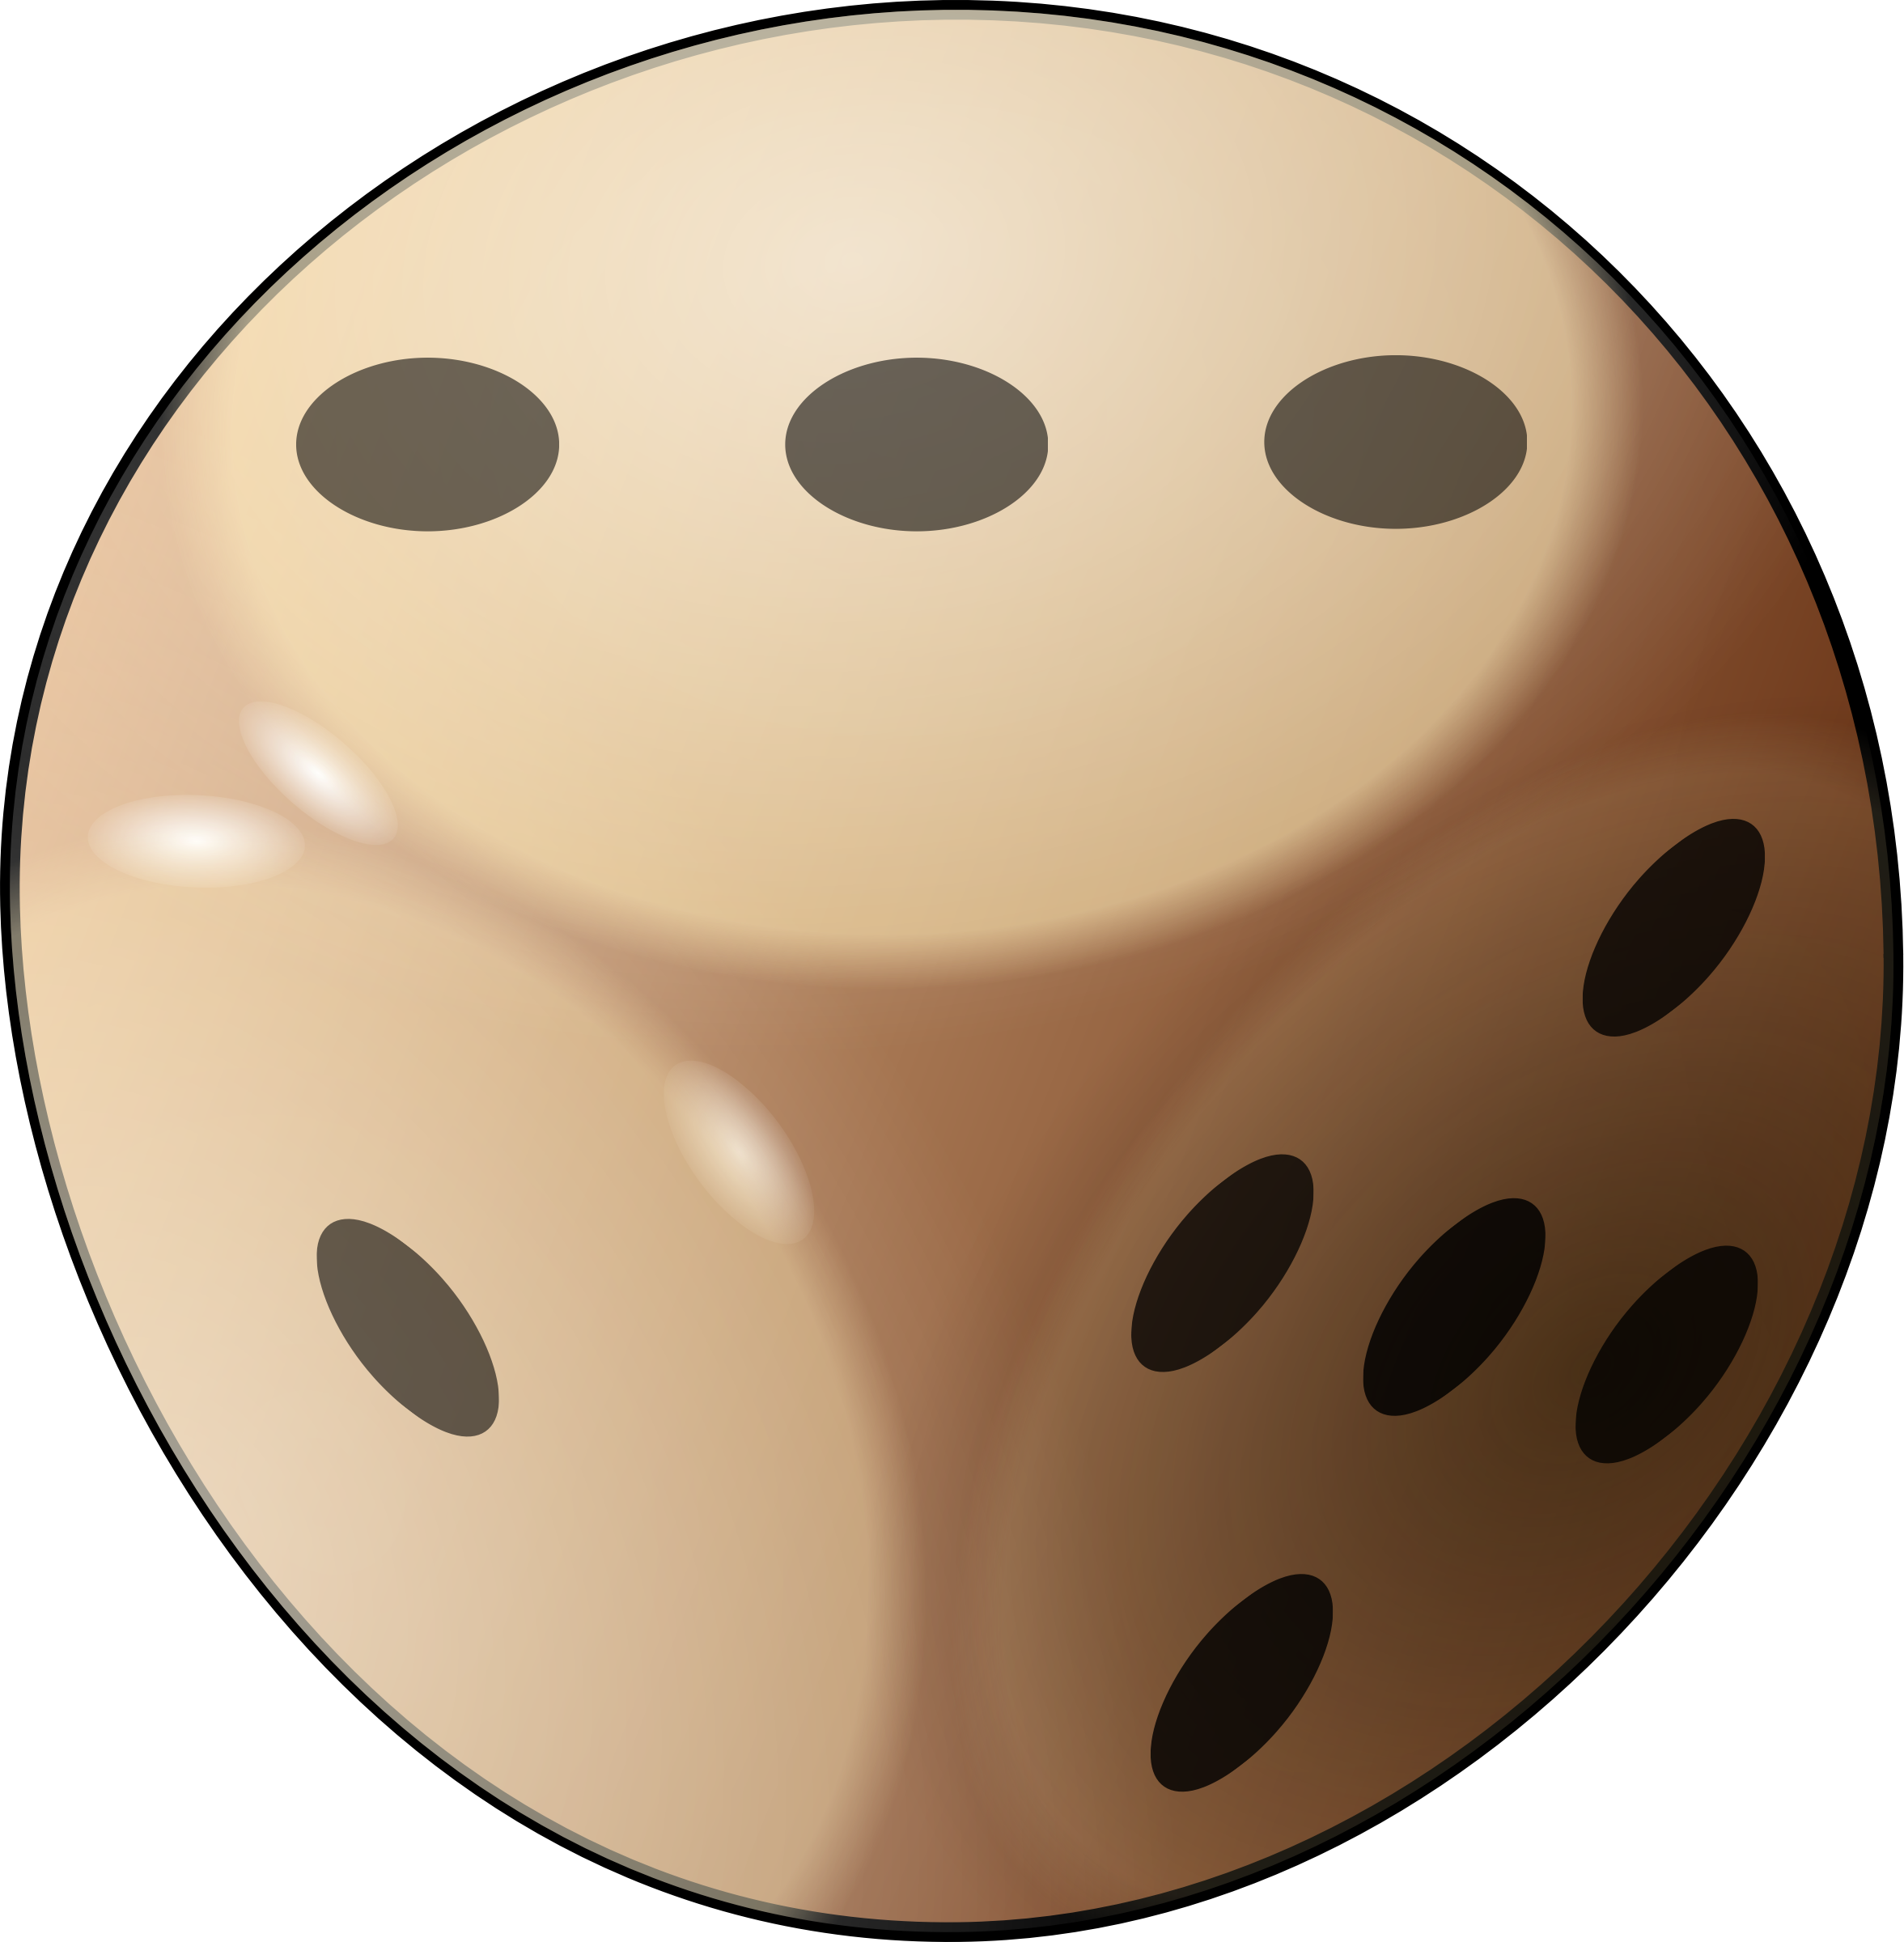 dice by pierro72